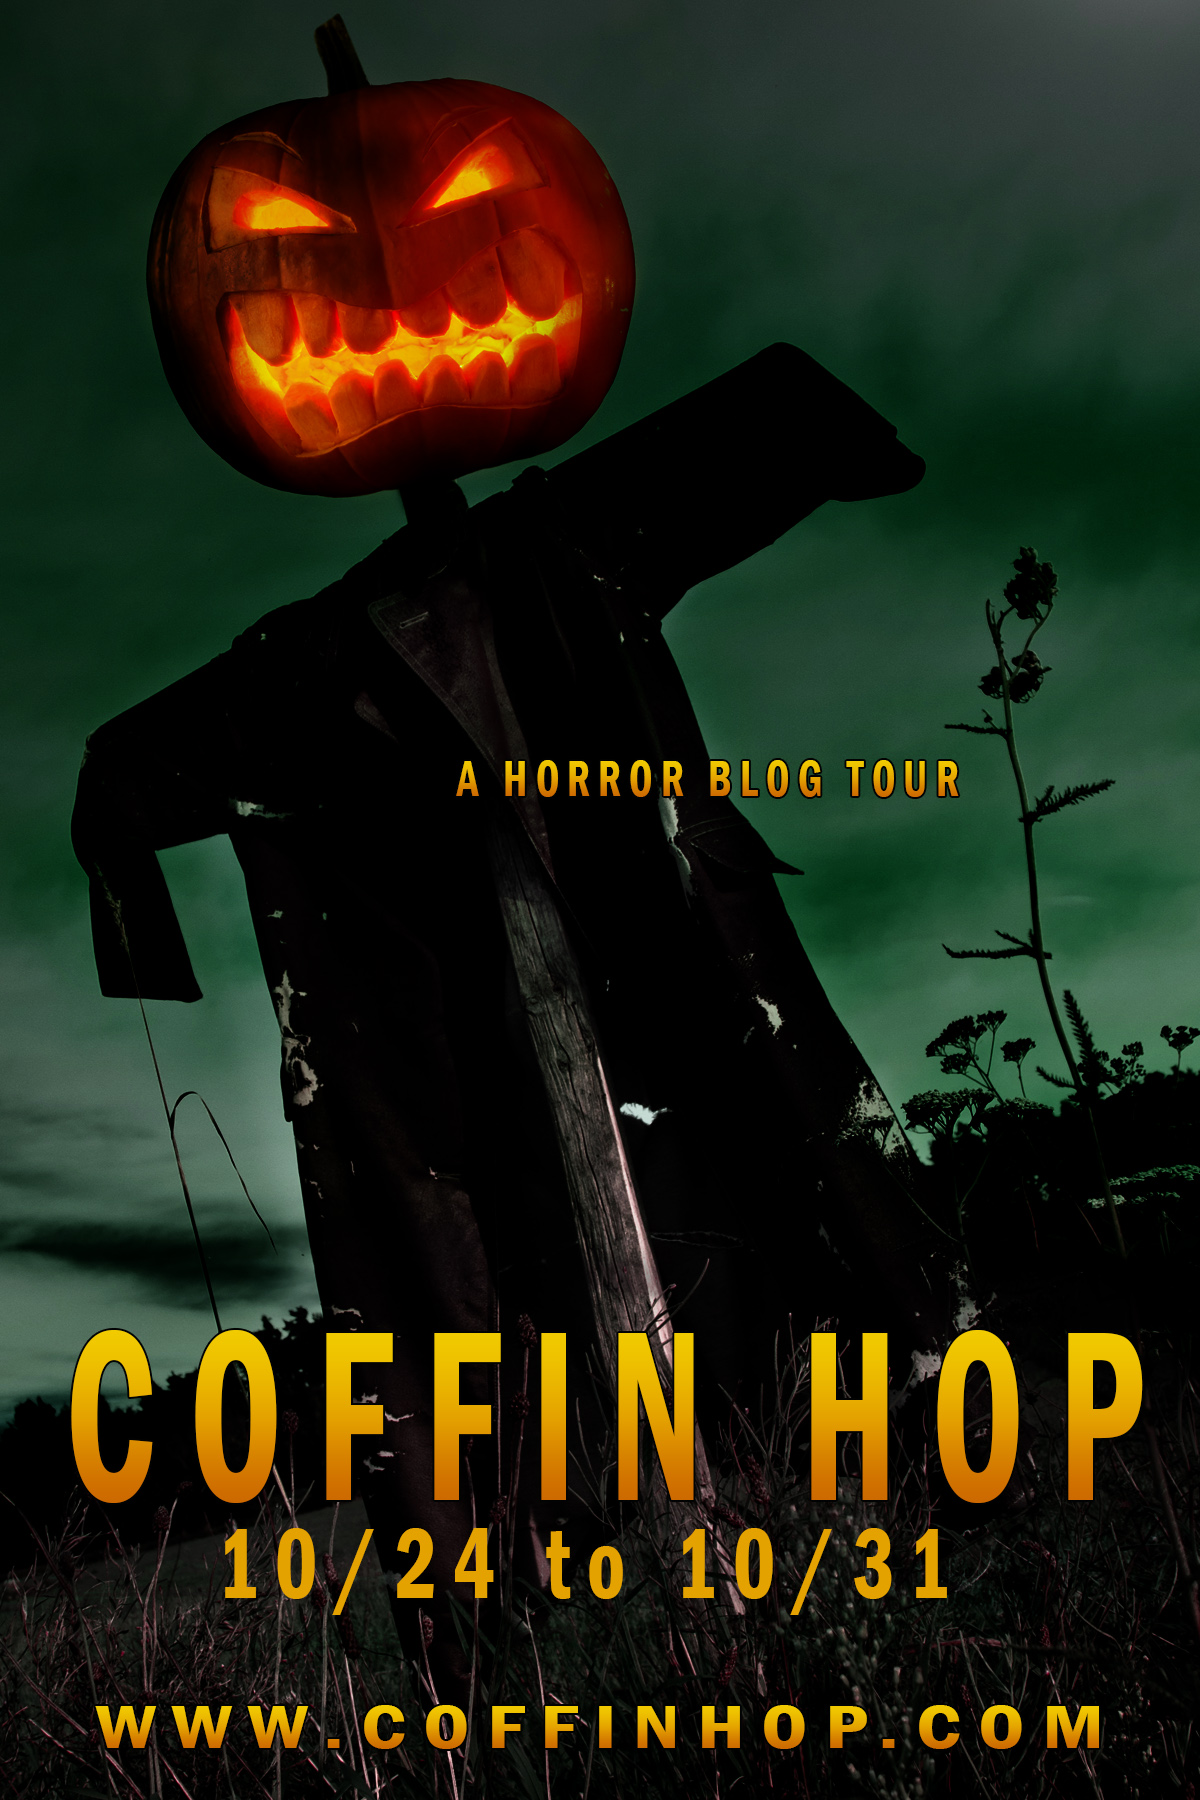 coffin-hop-advert-scarecrow